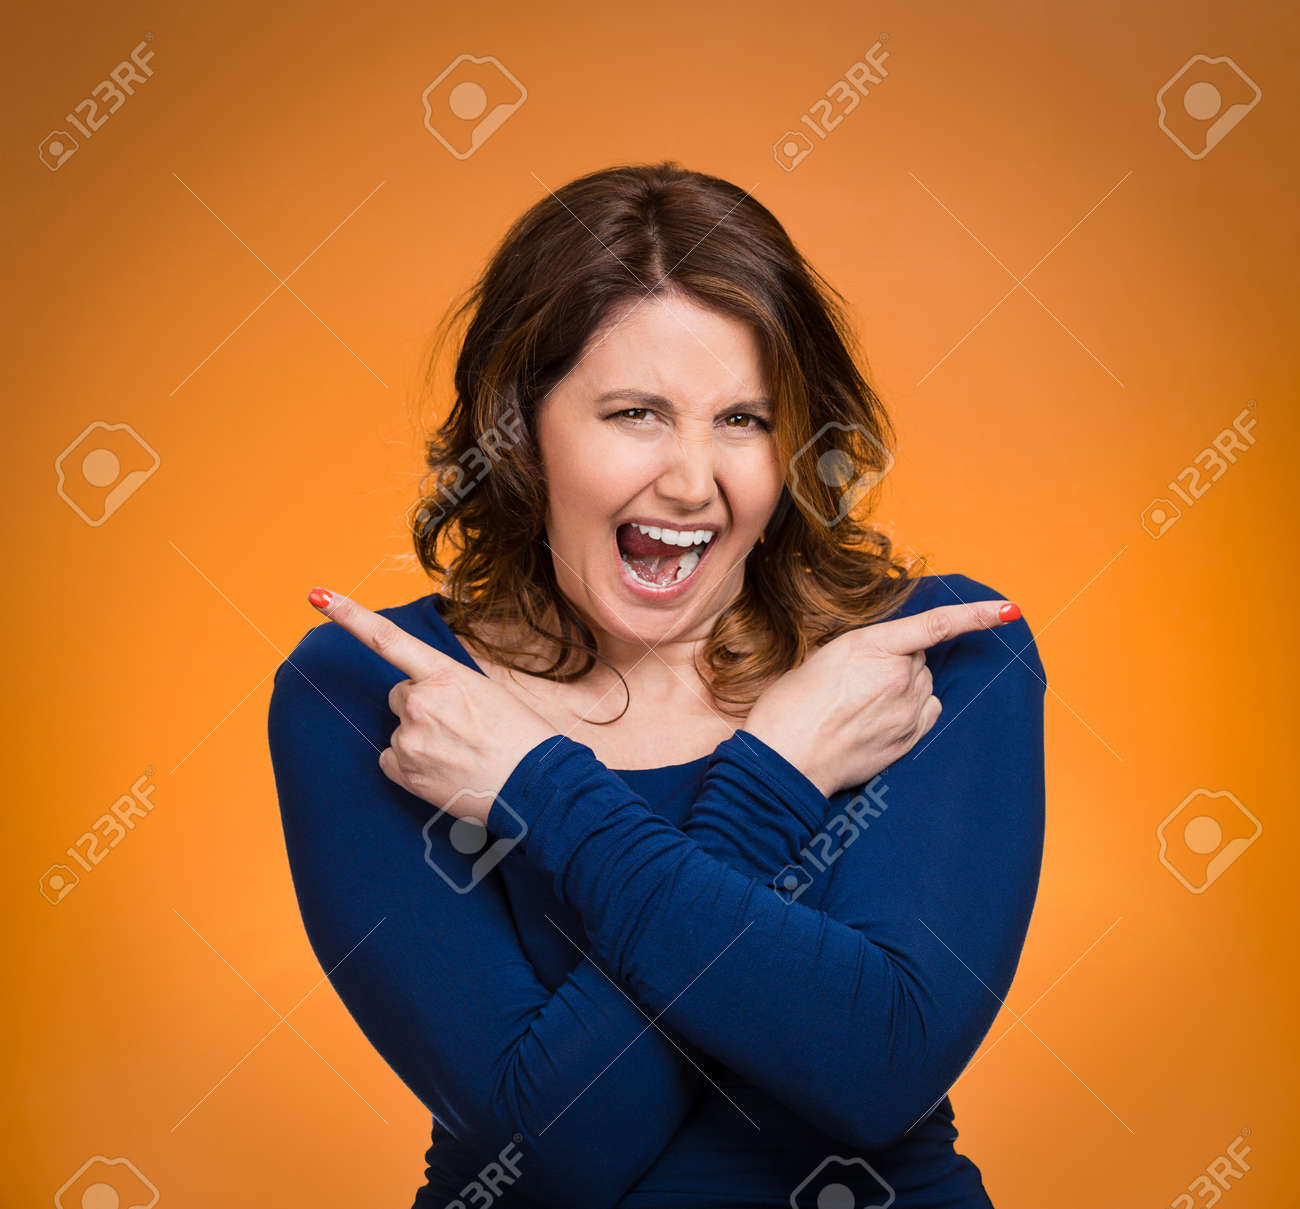 Portrait Confused Young Woman Pointing In Two Different Directions Stressed Frustrated Screaming